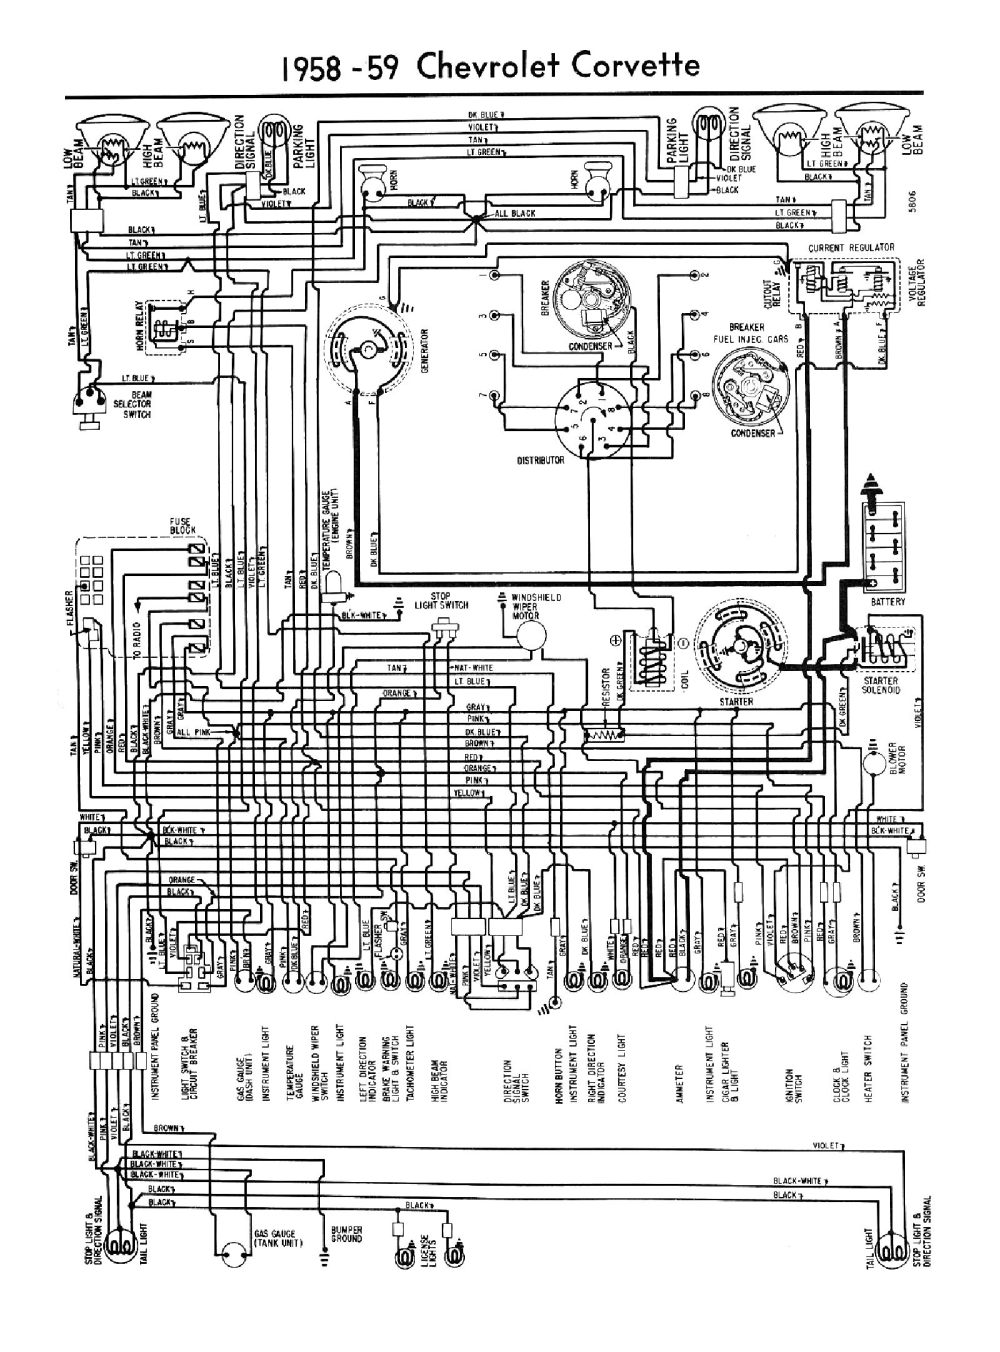 medium resolution of 1959 corvette wiring diagram wiring diagram third level 1968 camaro engine diagram 1959 corvette wiring diagram